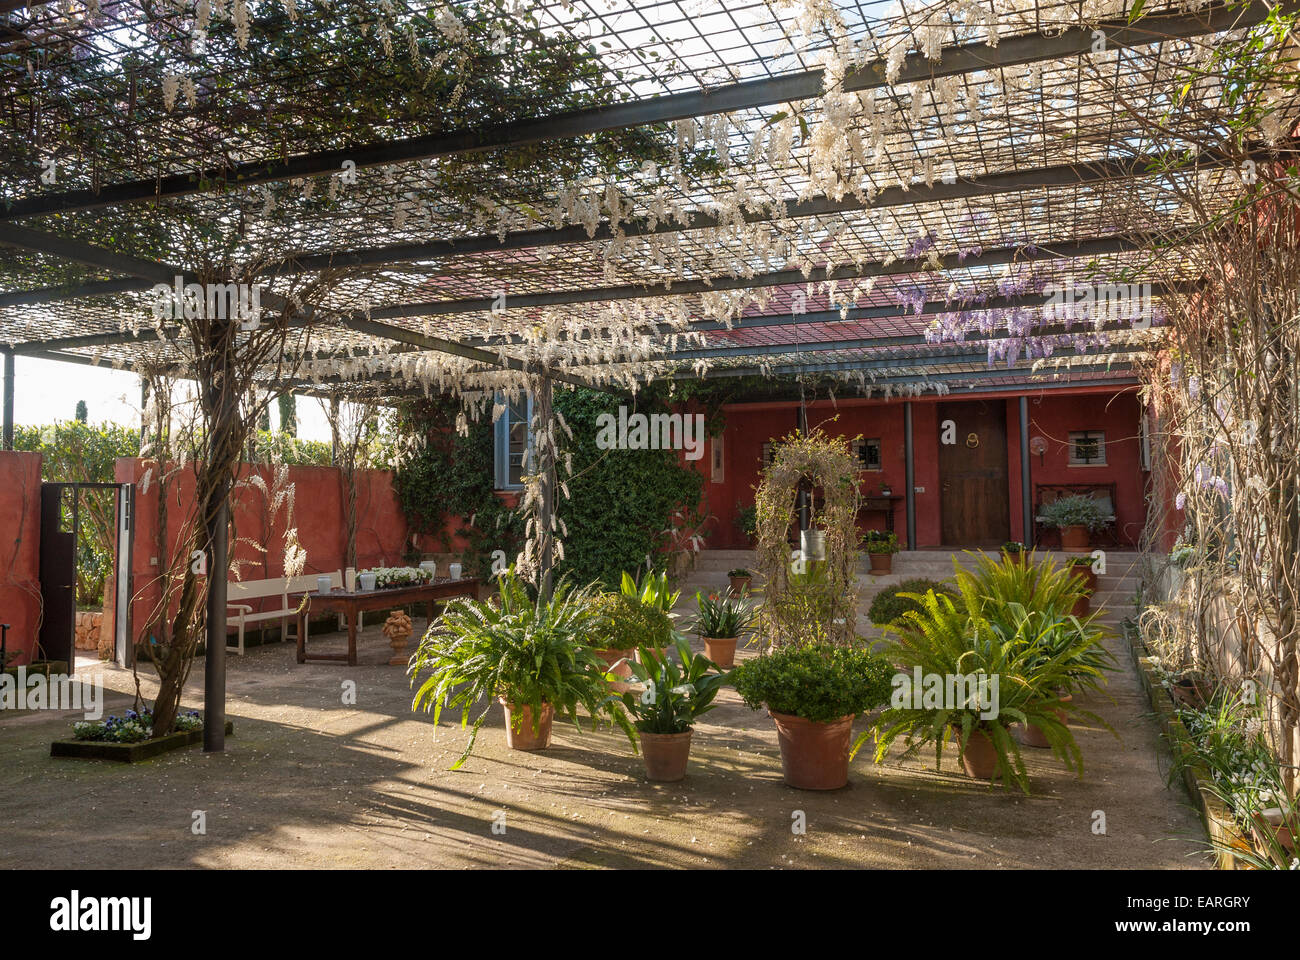 Mallorcan Pergola For Plant Room Covered By Wisteria Shade